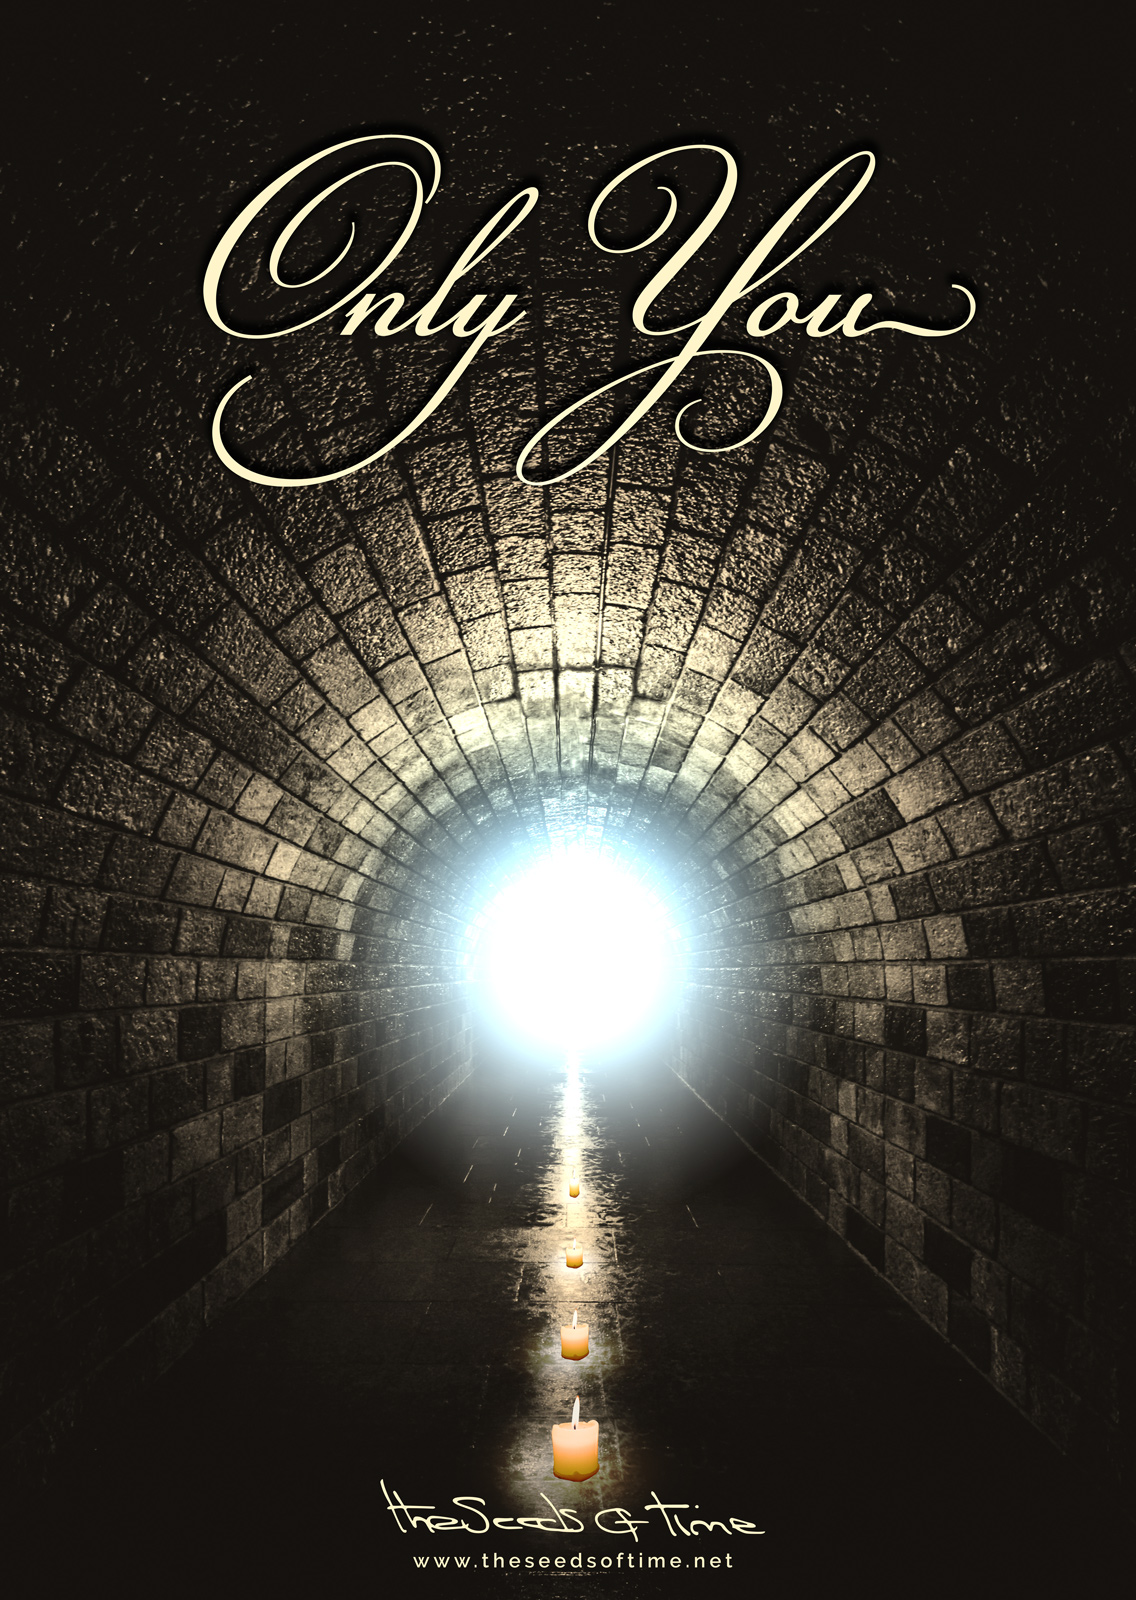 Poster art for song 'Only You' from album titled Long Road by The Seeds of Time on which there is shown a tunnel lit by a set of candles and a bright flash of sky blue light at the end of it